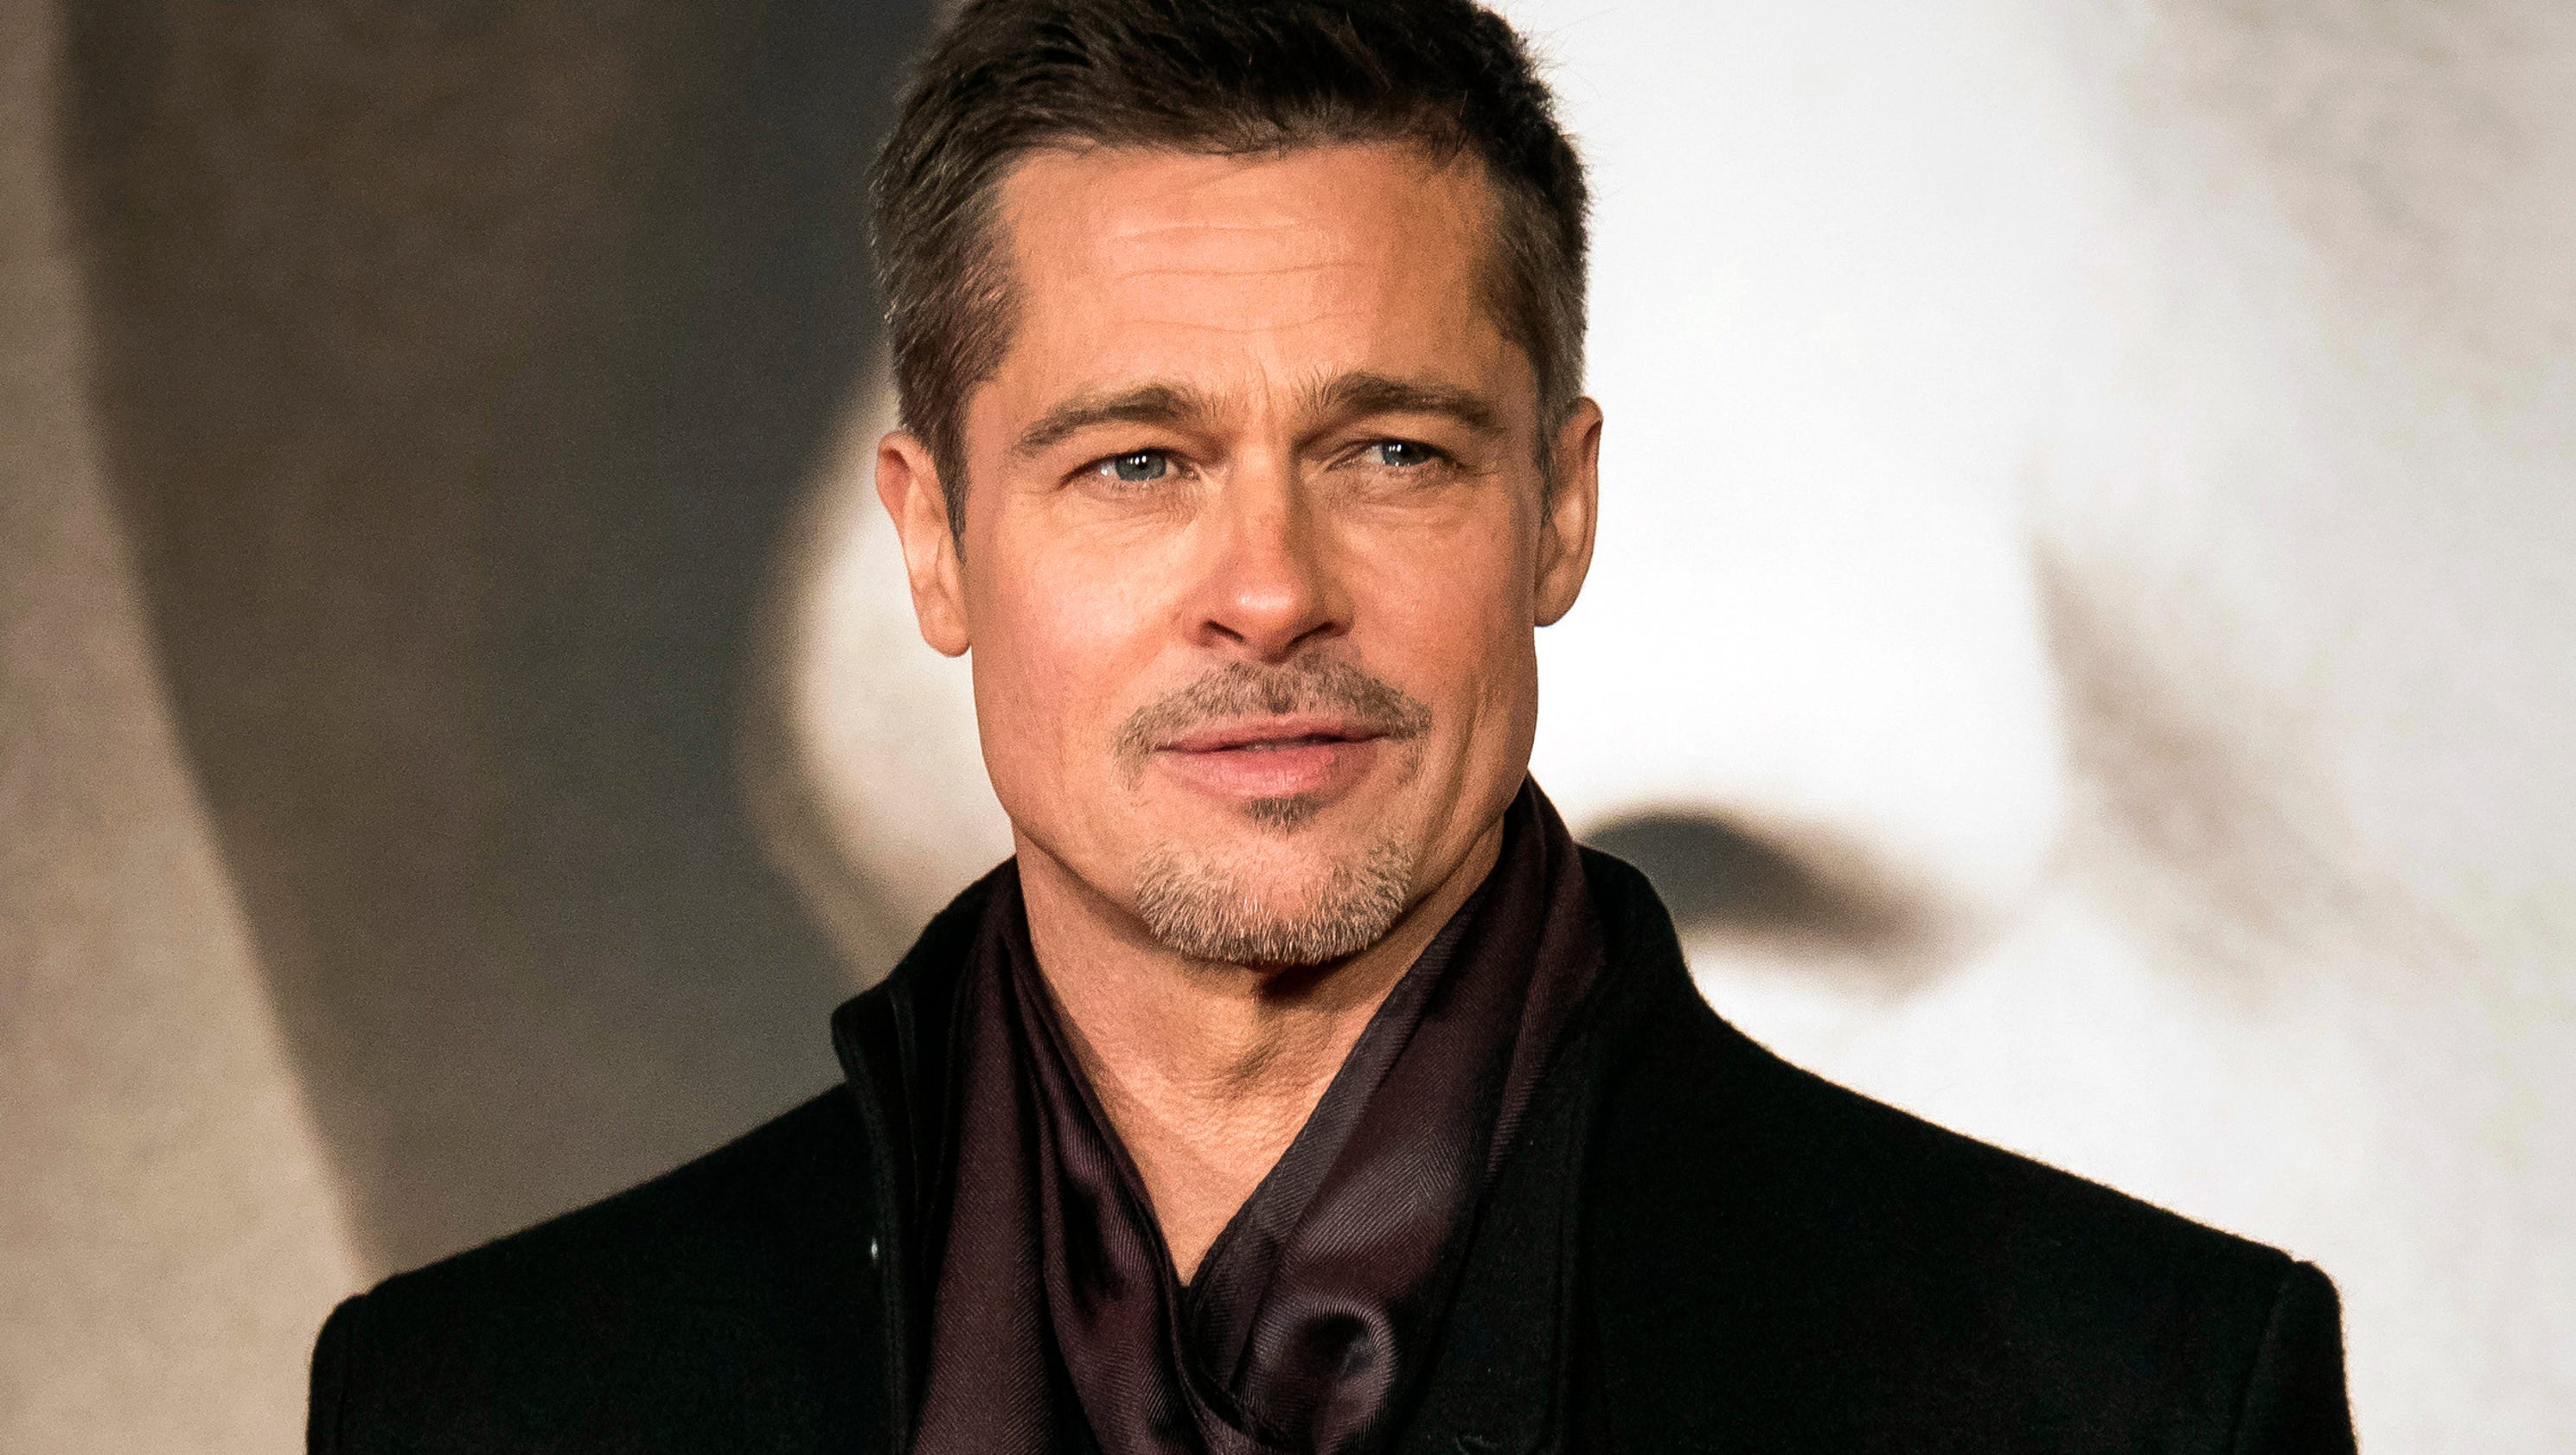 Brad Pitt talks Angelina Jolie during packed 'War Machine ...